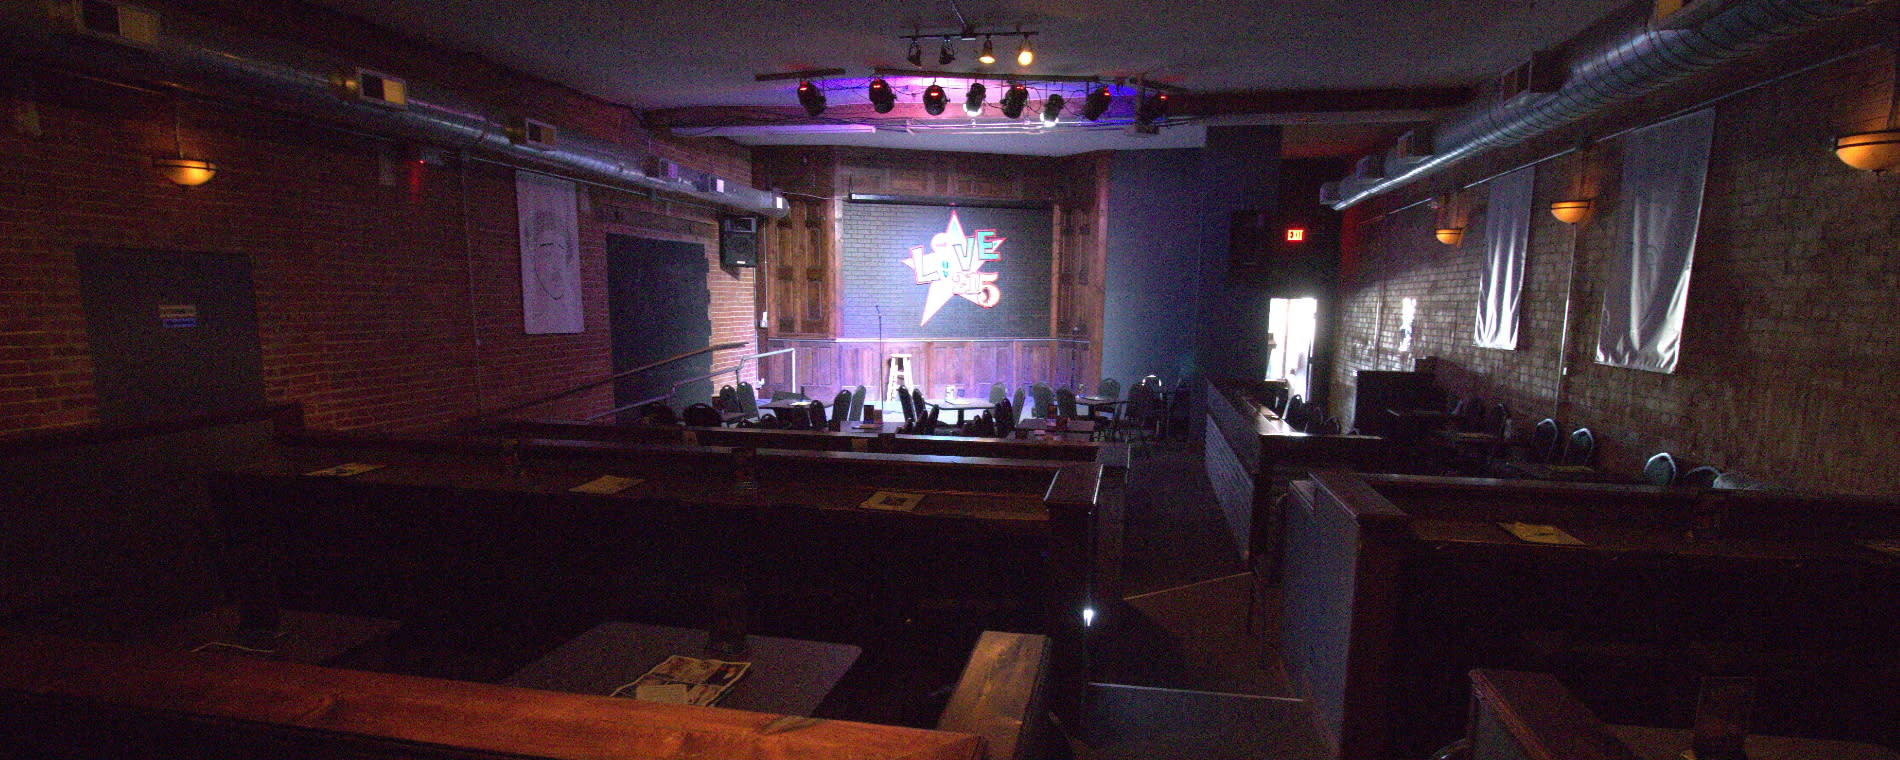 The Loony Bin Stage and Seating